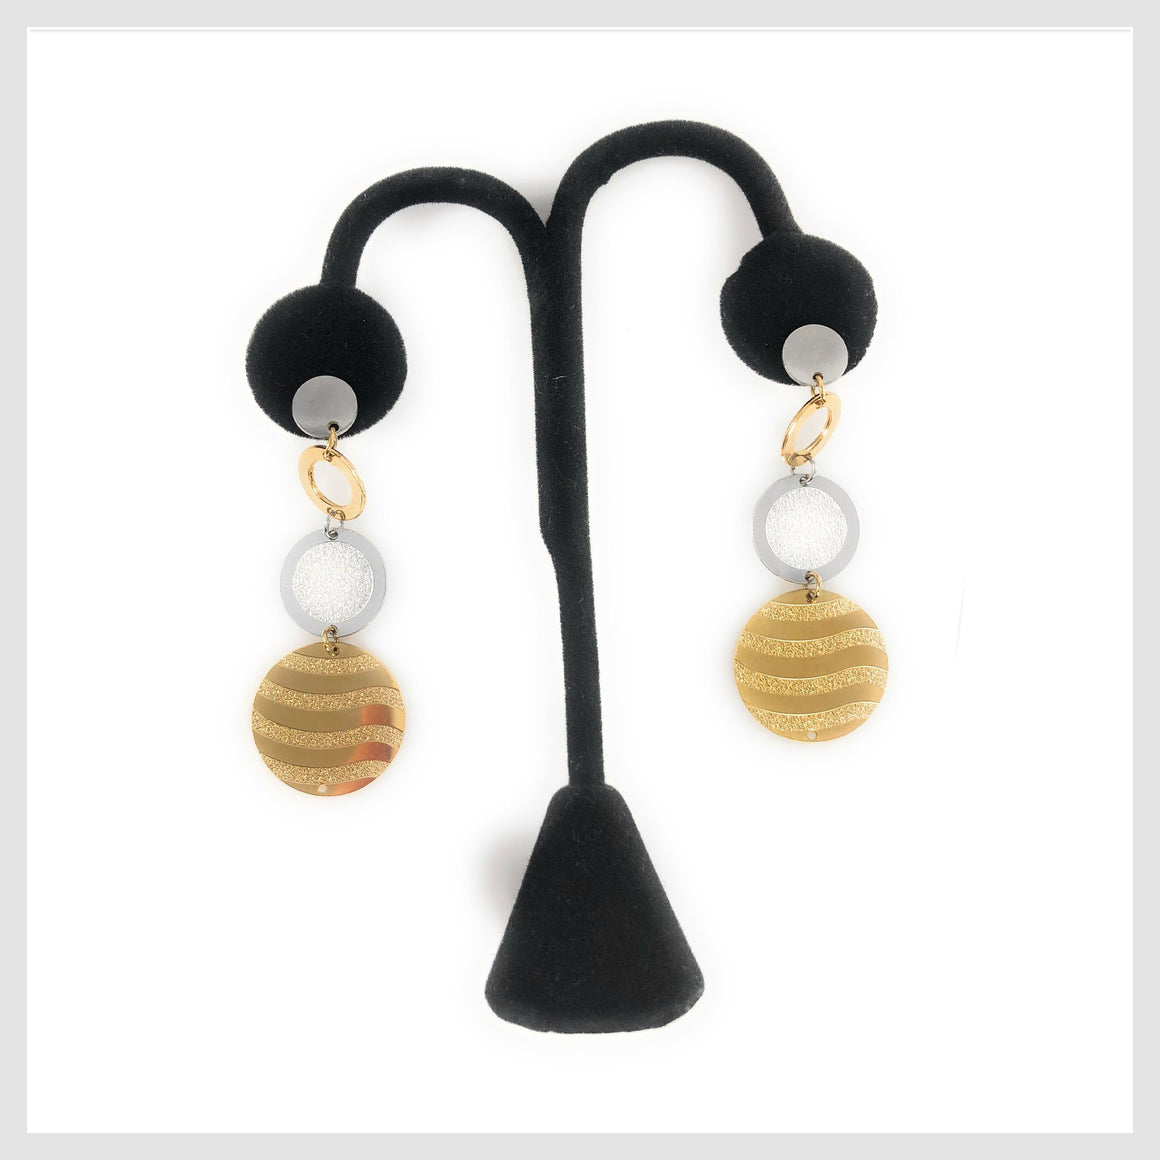 Stainless Steel Earrings Multi-tone Circle Drop - Beads and Dangles